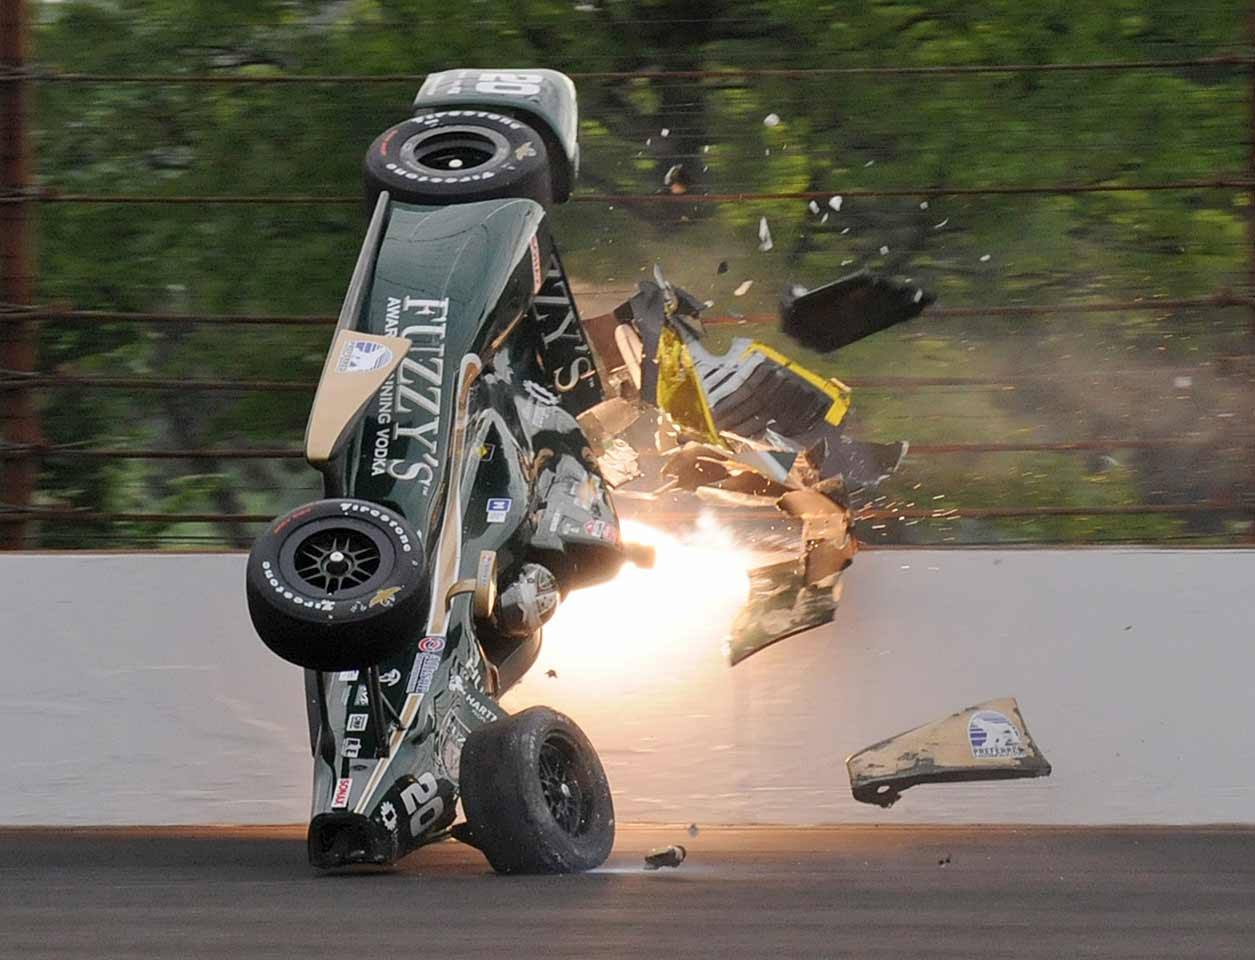 After the death of Dan Wheldon in 2012 (Ed Carpenter is pictured here), Wilson was selected along with Dario Franchitti and Tony Kanaan to represent the drivers in talks with IndyCar. Among his safety proposals: seamless metal barriers that allow cars to slide freely without getting snagged, and grandstands that are inside racing ovals to better protect fans because debris usually flies to the outside.